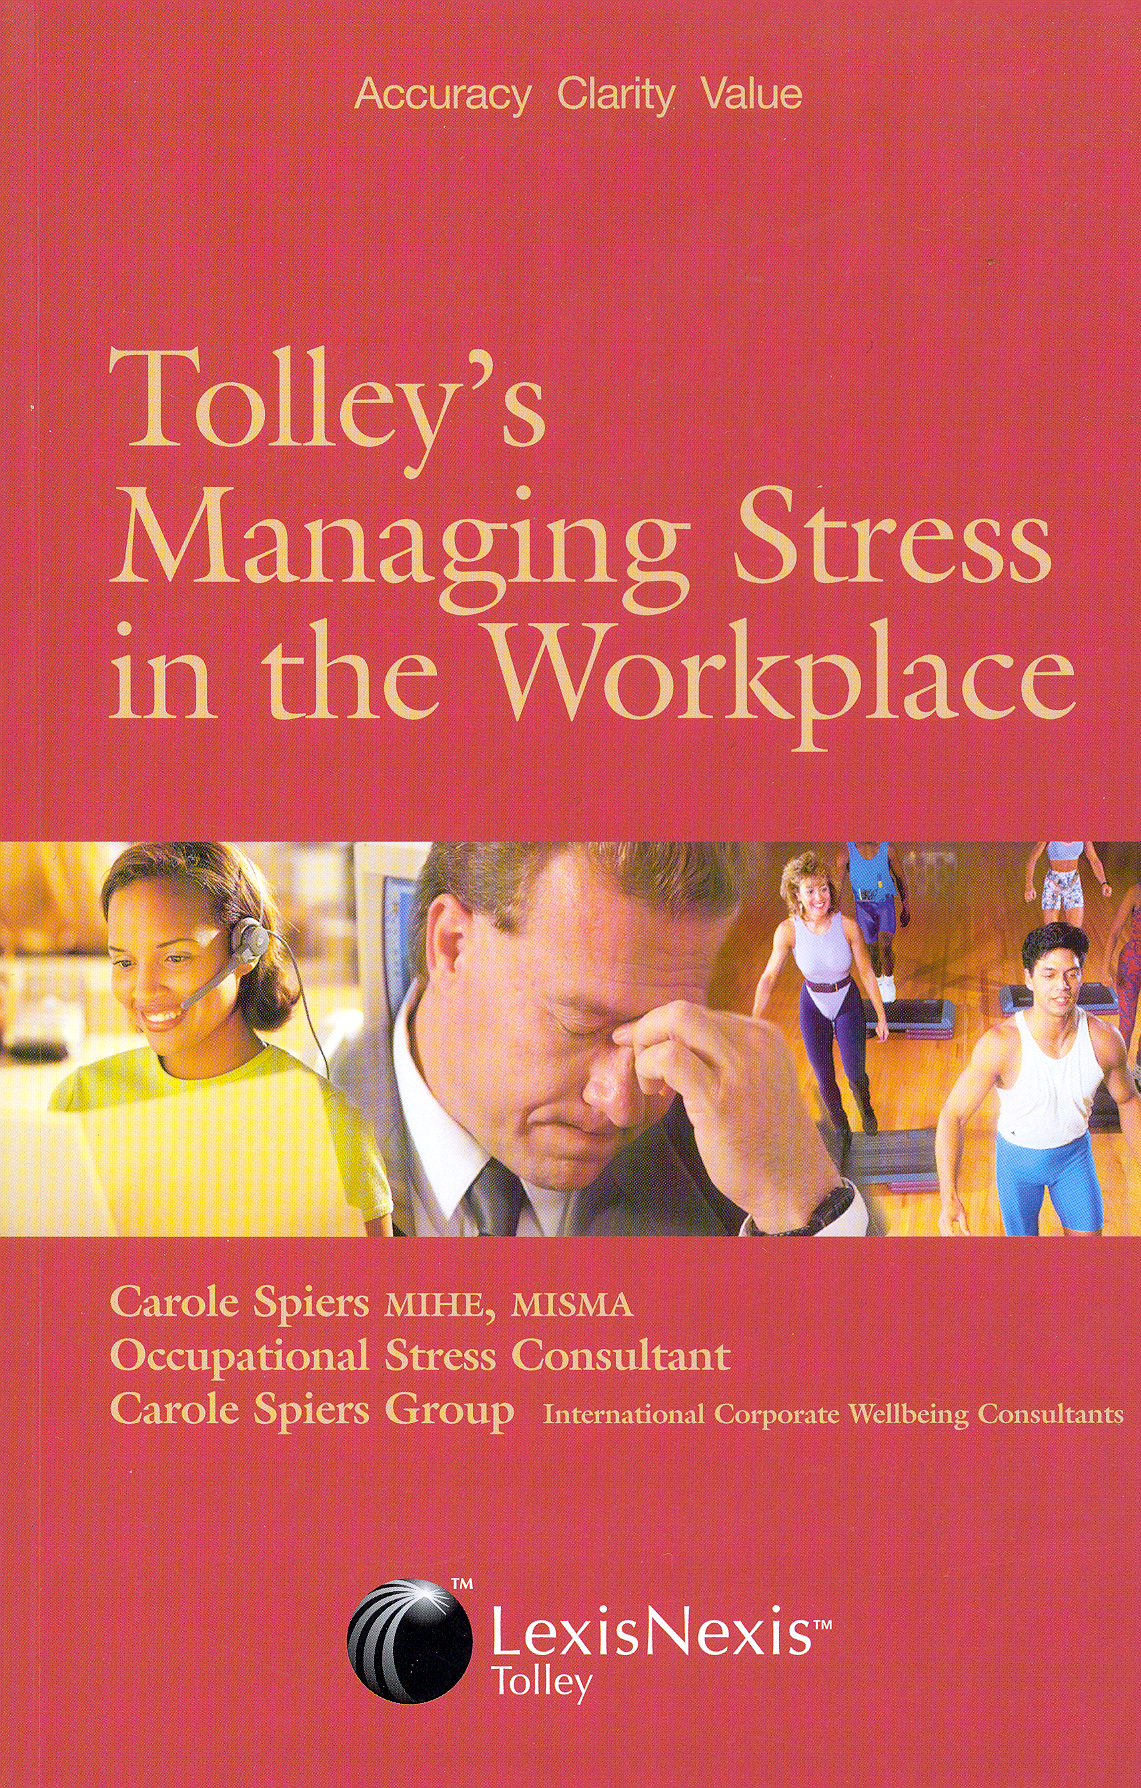 Tolley's Managing Stress in the Workplace